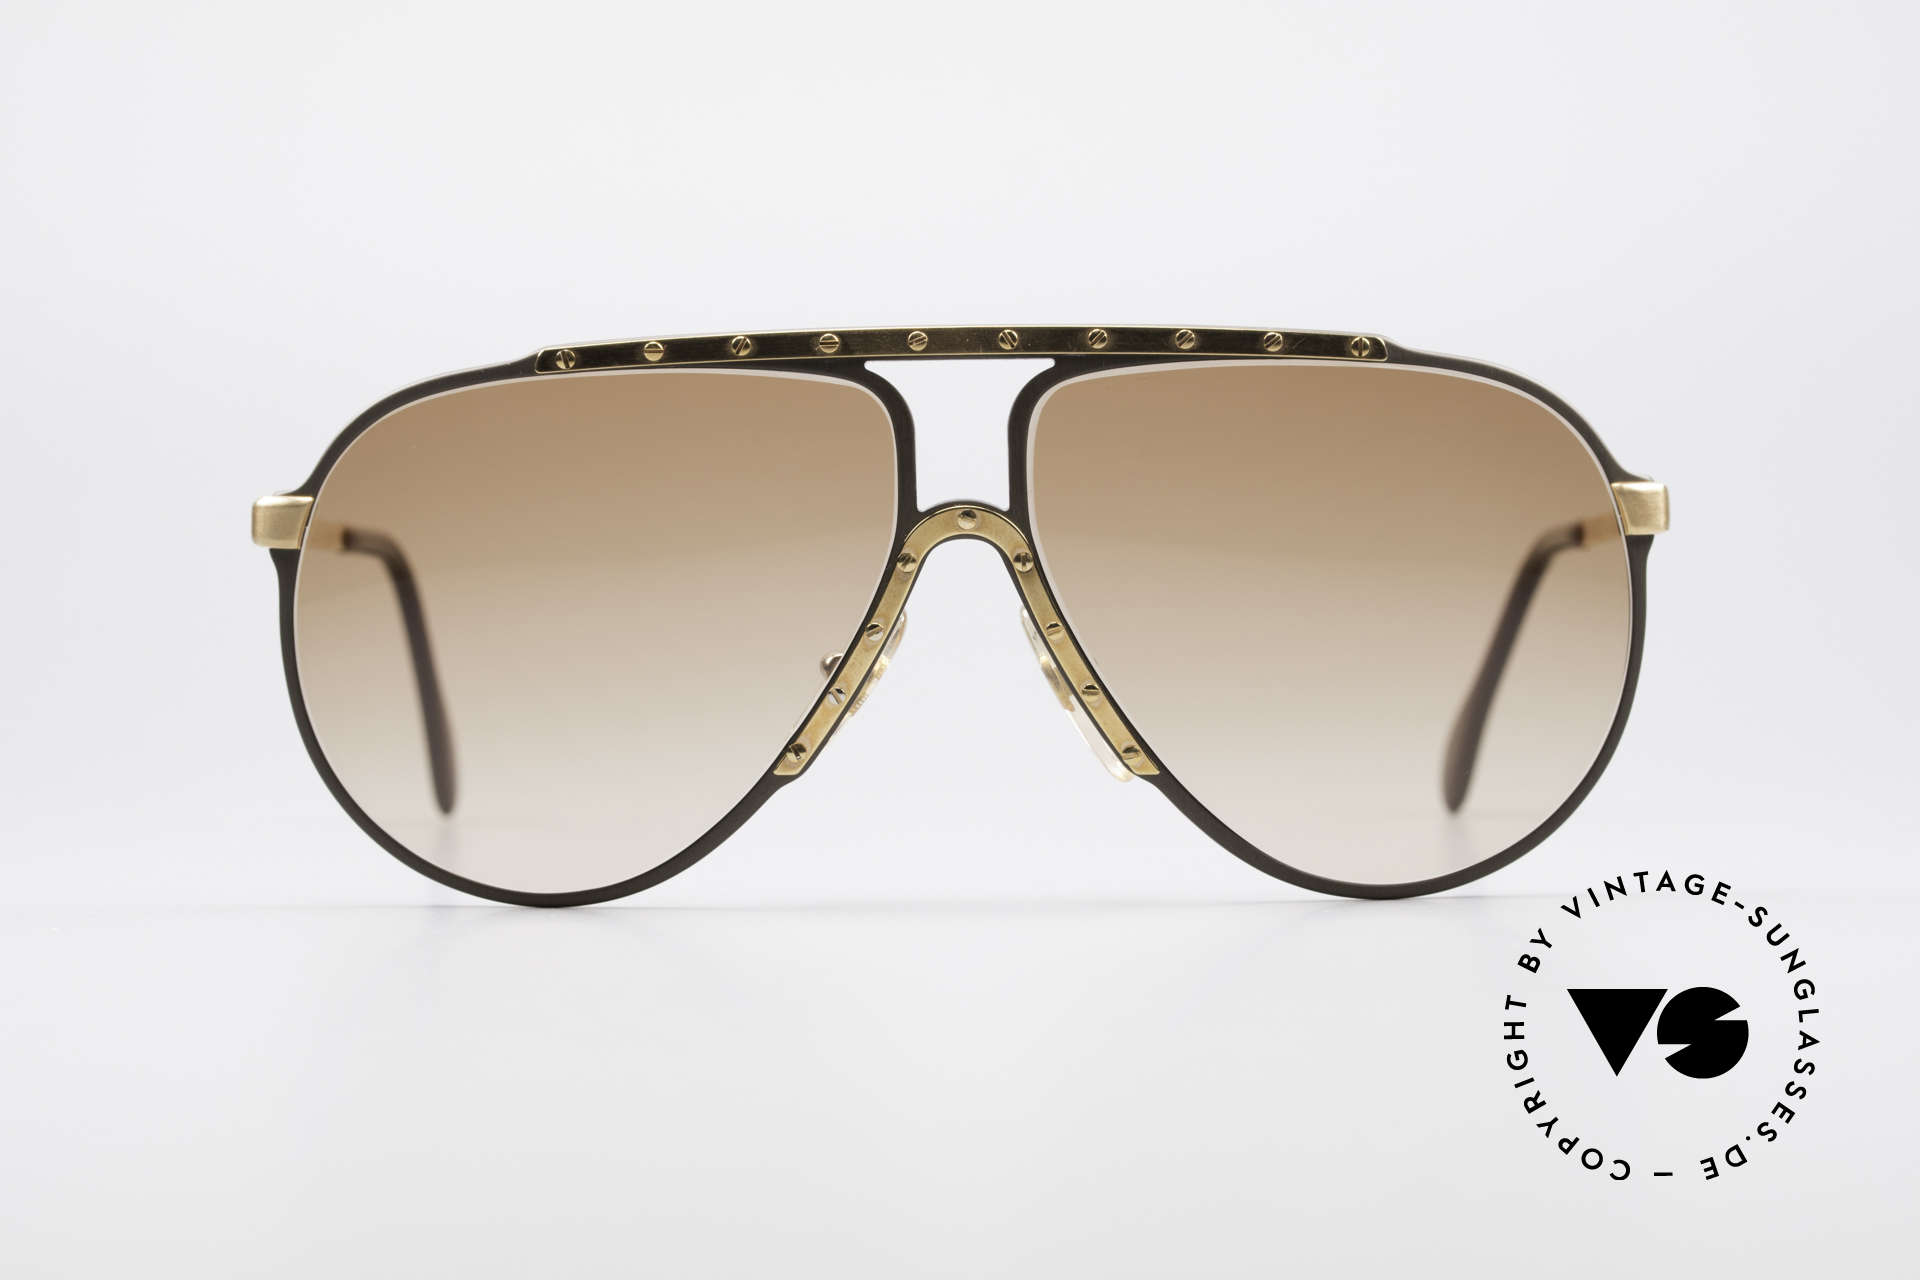 Alpina M1 Iconic West Germany Frame, M1 = the bestseller sunglasses of the 1980's per se, Made for Men and Women